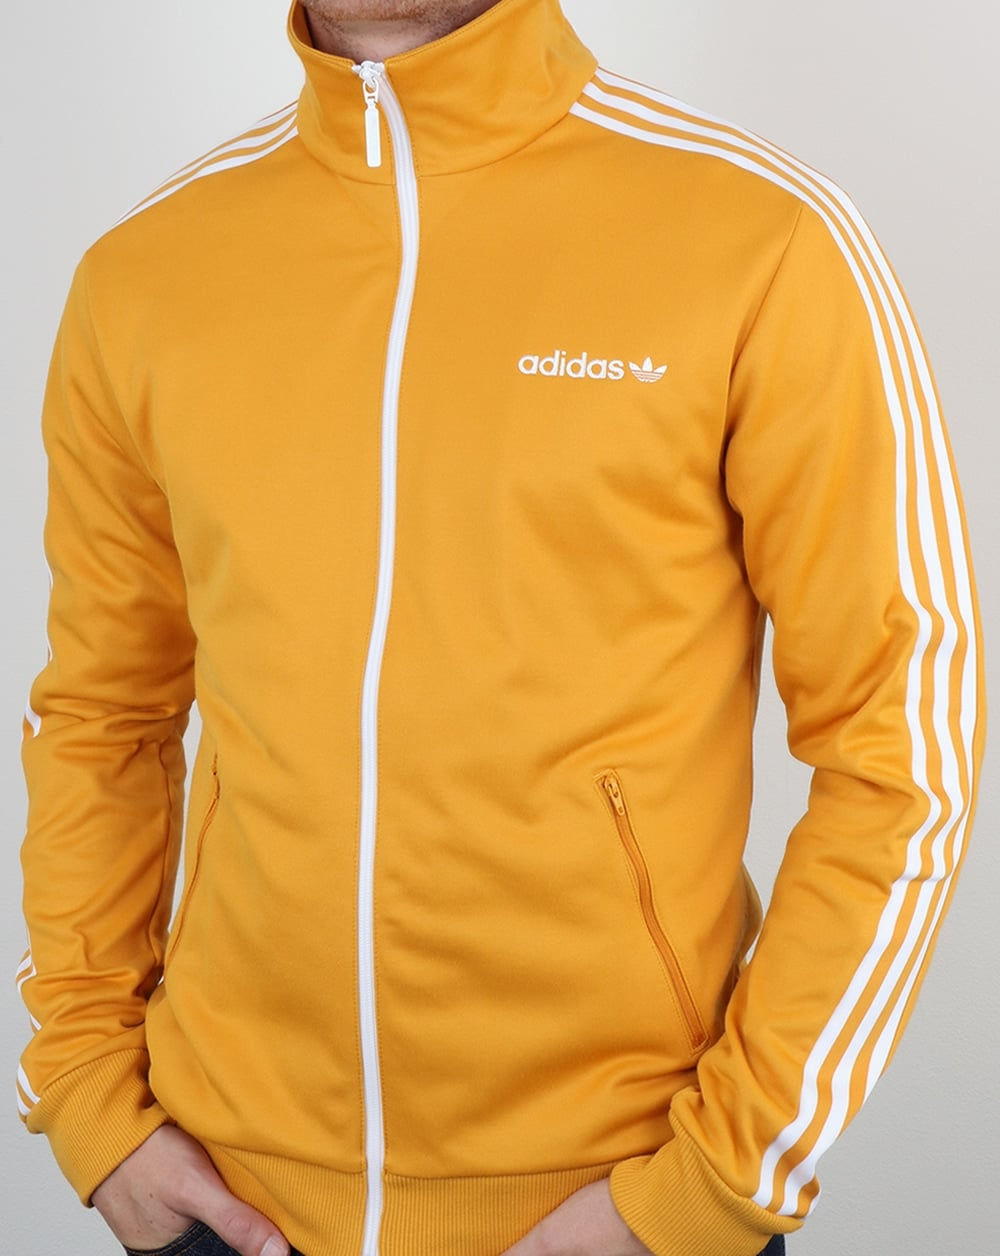 adidas originals beckenbauer track top yellow tracksuit. Black Bedroom Furniture Sets. Home Design Ideas